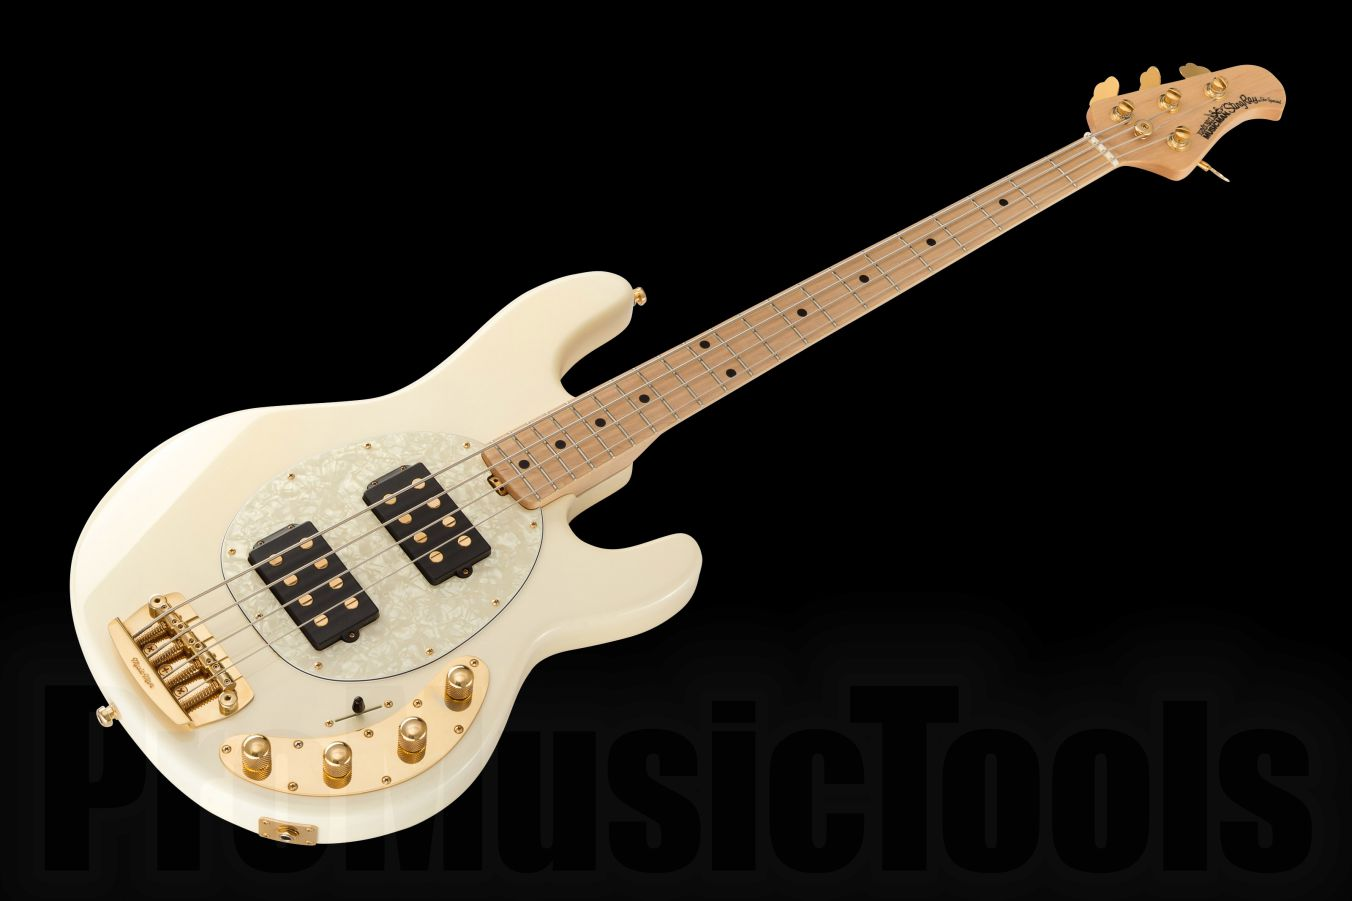 Music Man USA Stingray 4 HH SLO Special WH - White MN - Gold Hardware Limited Edition